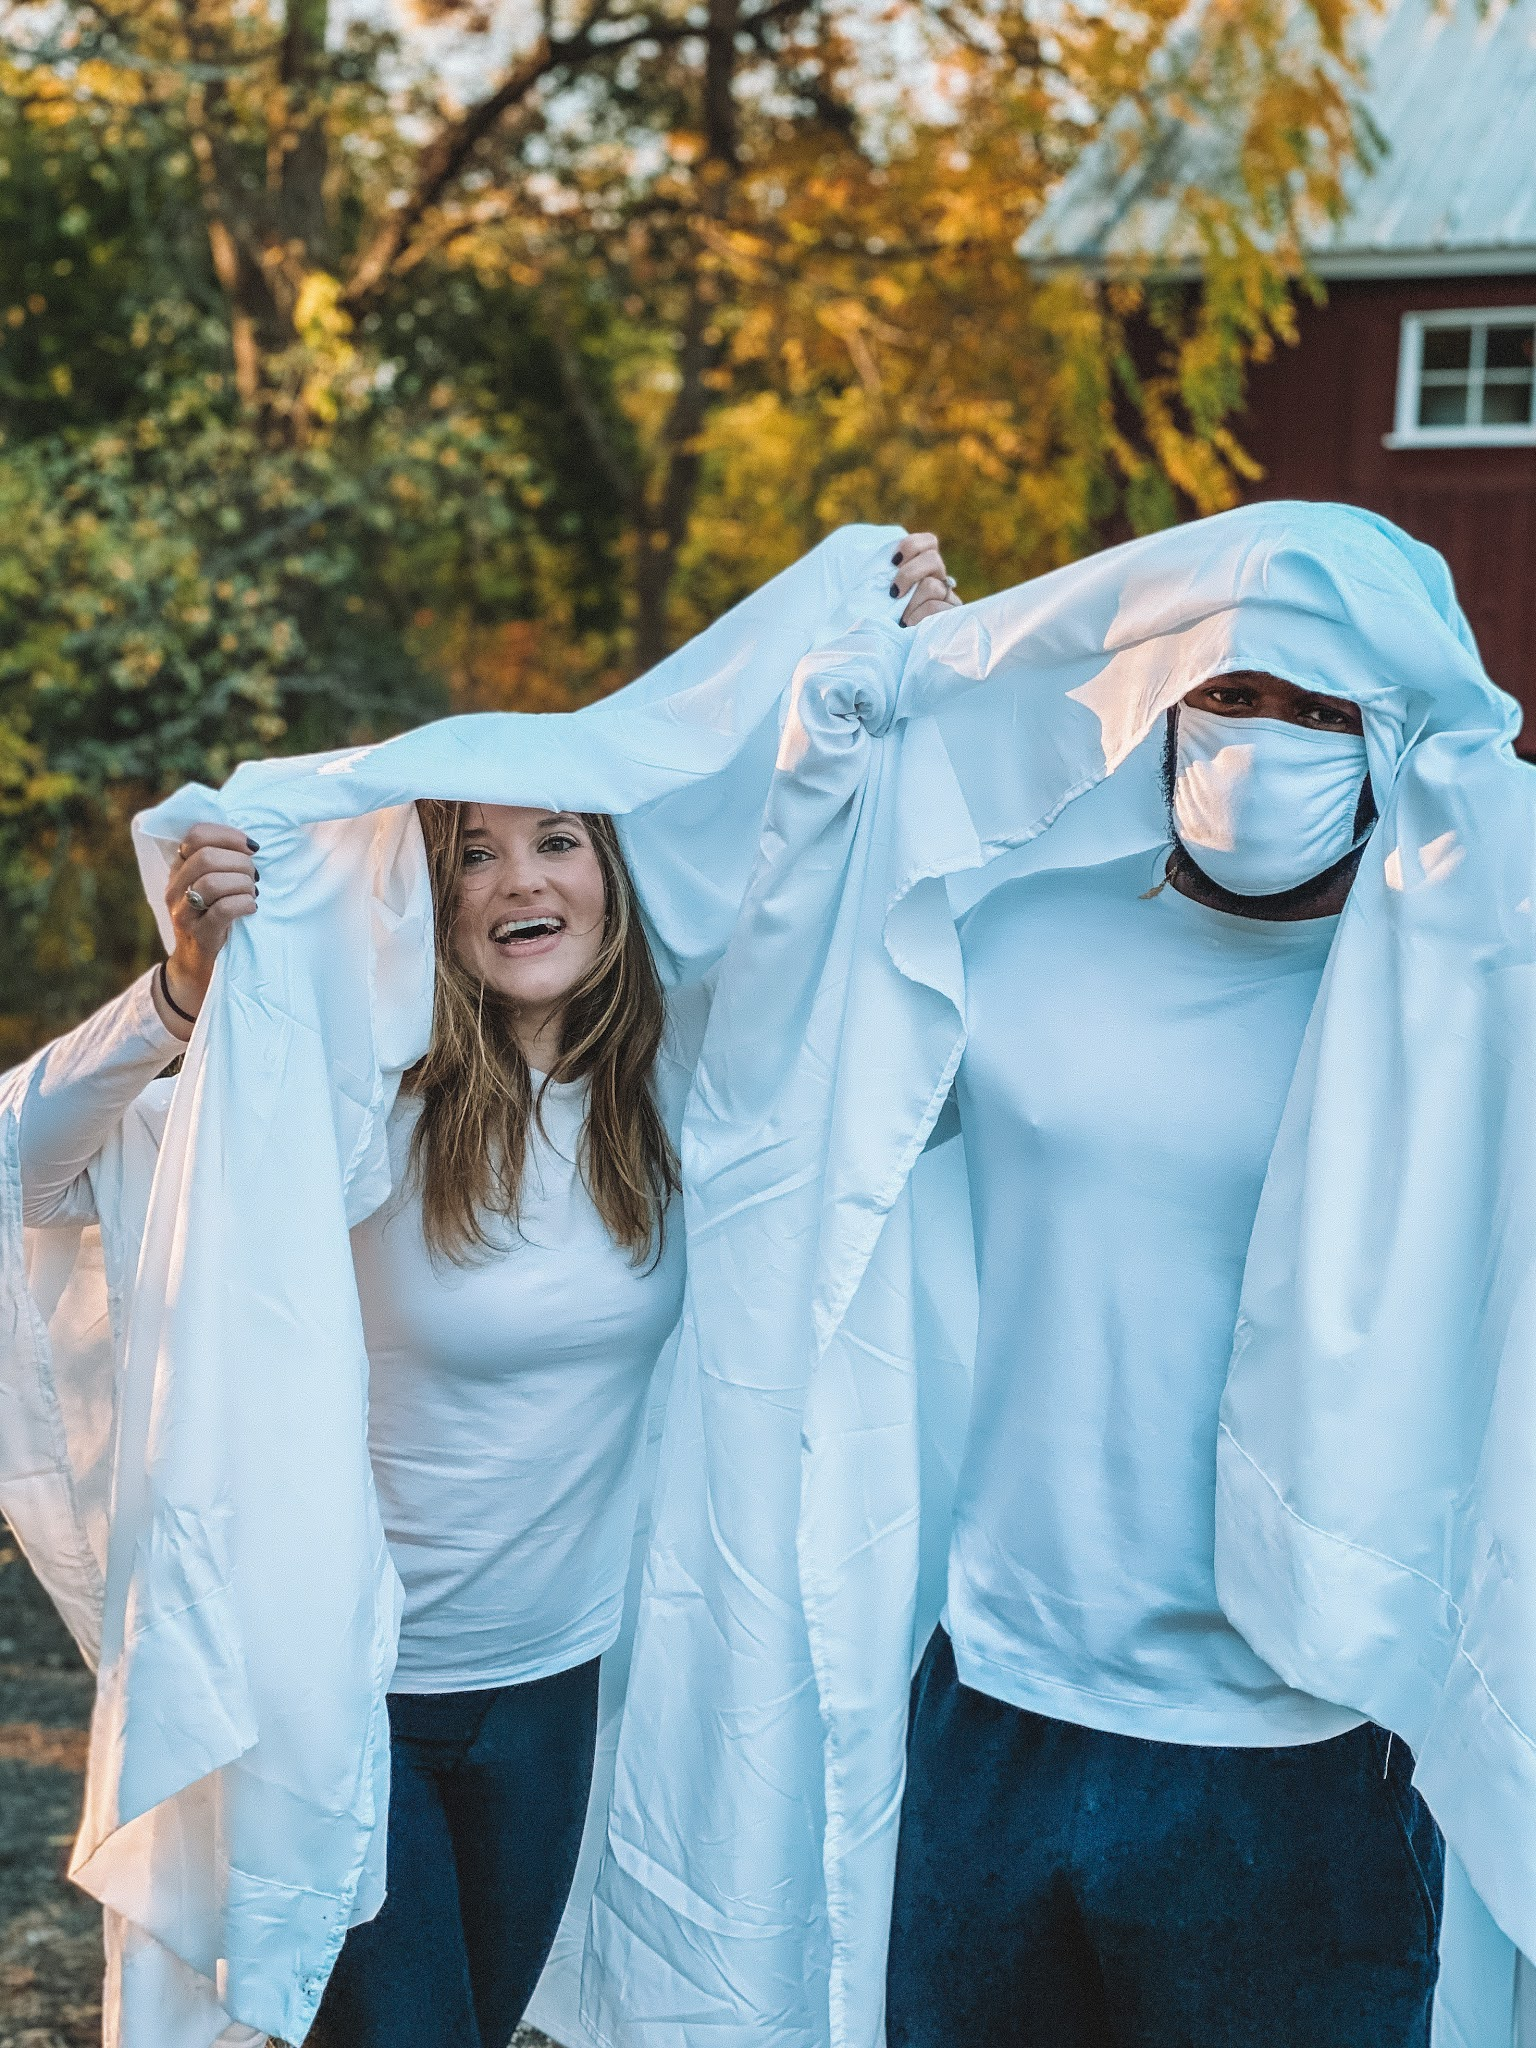 Fashion blogger Kathleen Harper sharing an easy couples costume idea for Halloween